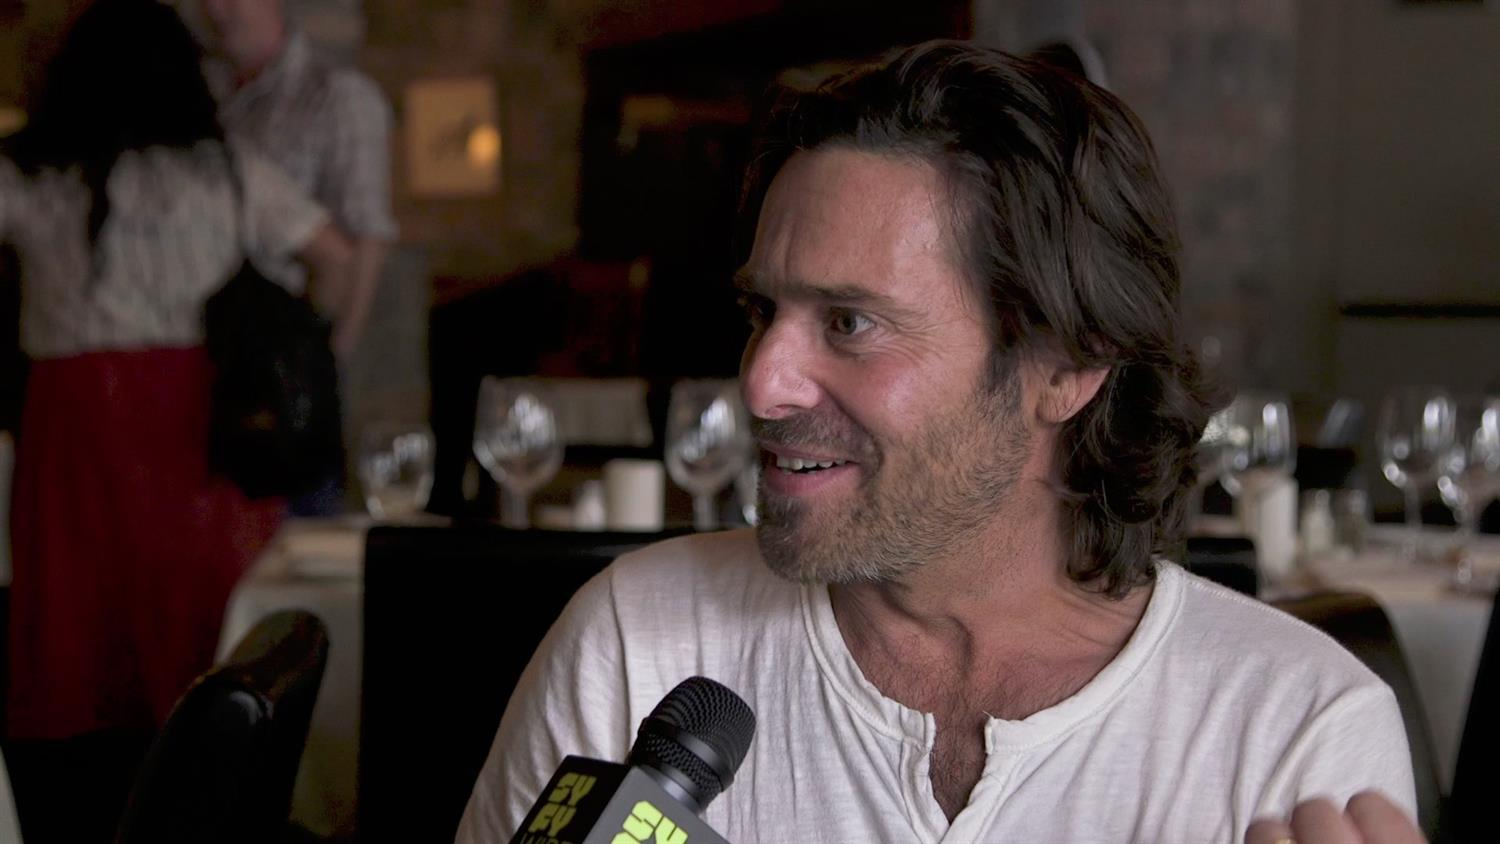 Battlestar Galactica's James Callis on How HE Wanted Baltar's Story to End